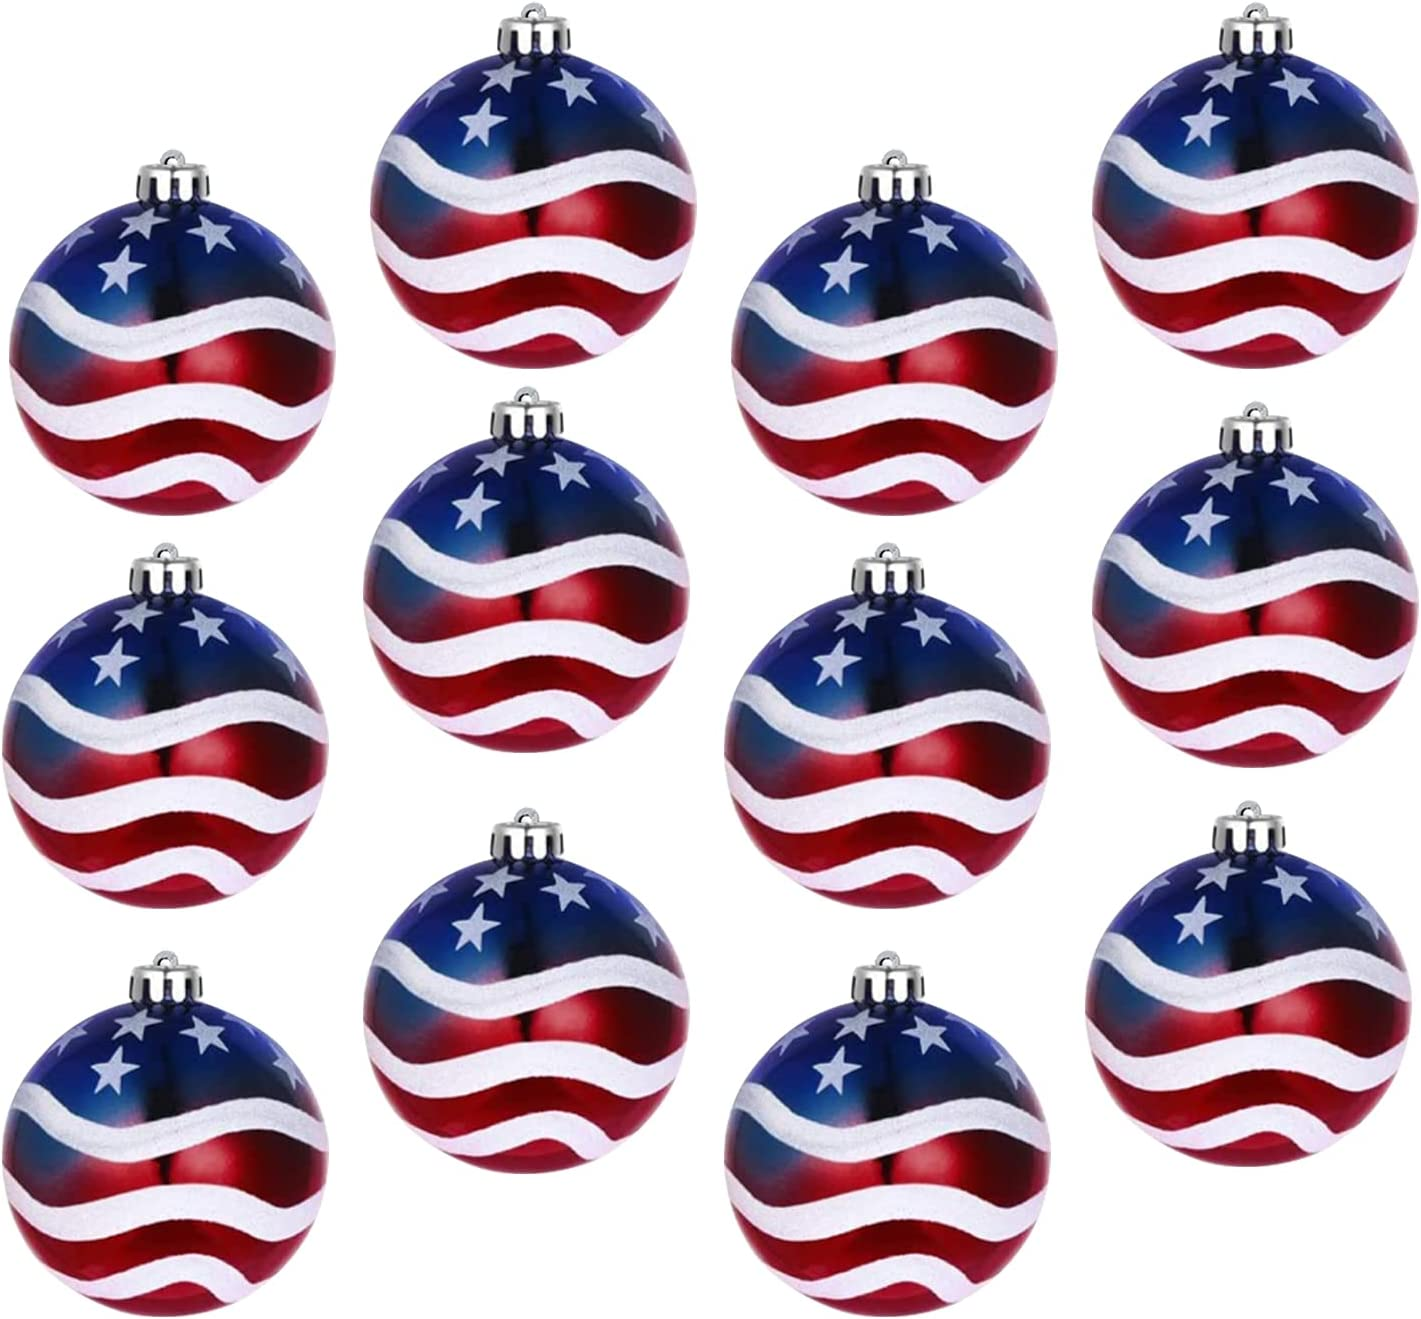 12PCS Independence Day Ball Ornament - 4th of July Patriotic Hanging Ball Decoration USA Themed Party Decor Tree Ornaments for Independence Day Party Decor Indoor Outdoor Ball Hanging Decoration